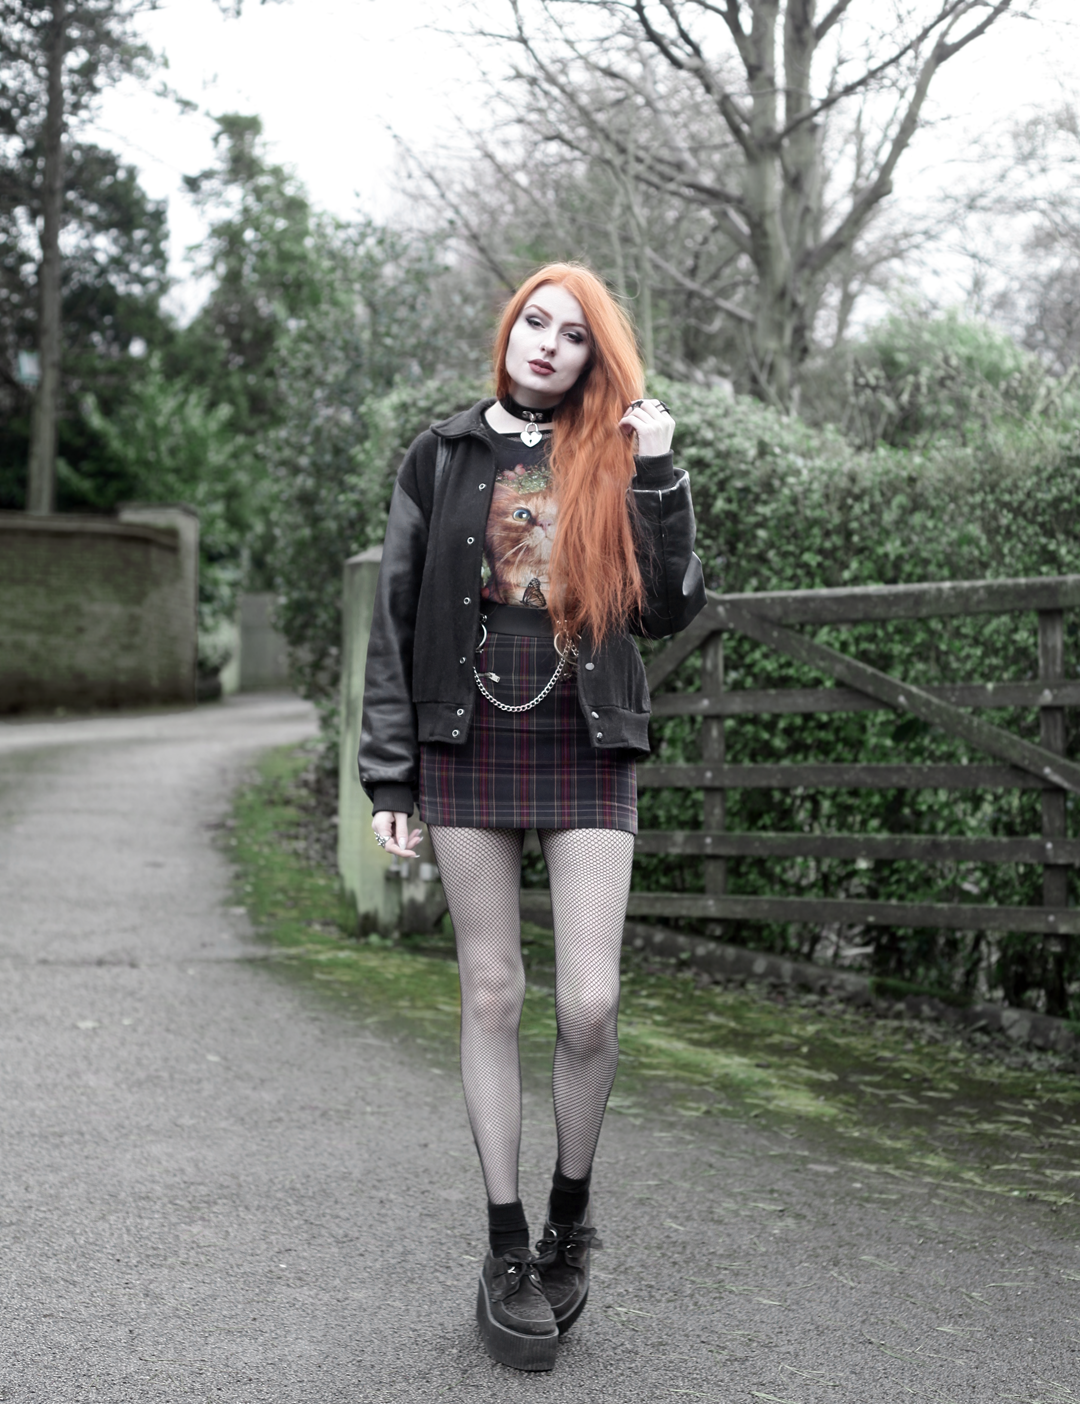 Olivia Emily wears Vintage Cat Tee, fishnet long sleeve top, Mary Wyatt Belt, Plaid Skirt, and Underground Creepers